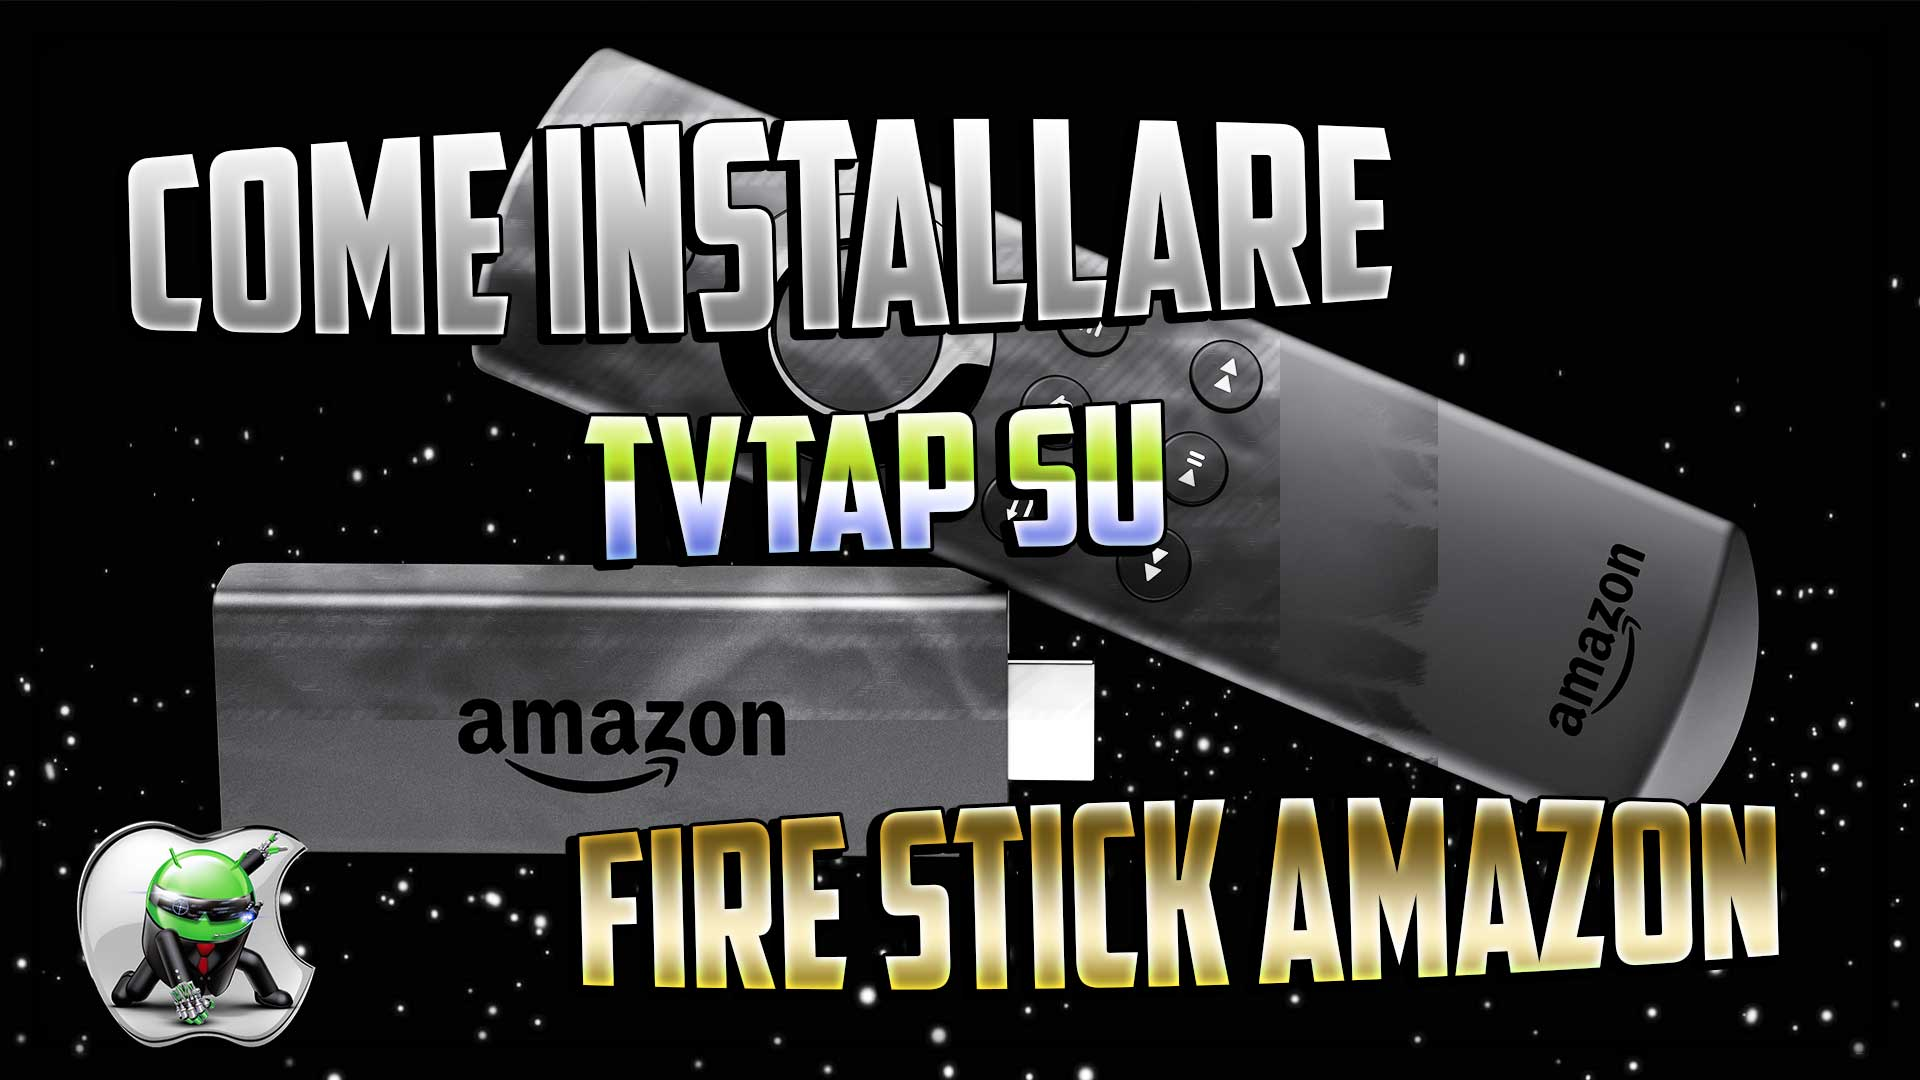 TVTAP su Fire Stick Amazon